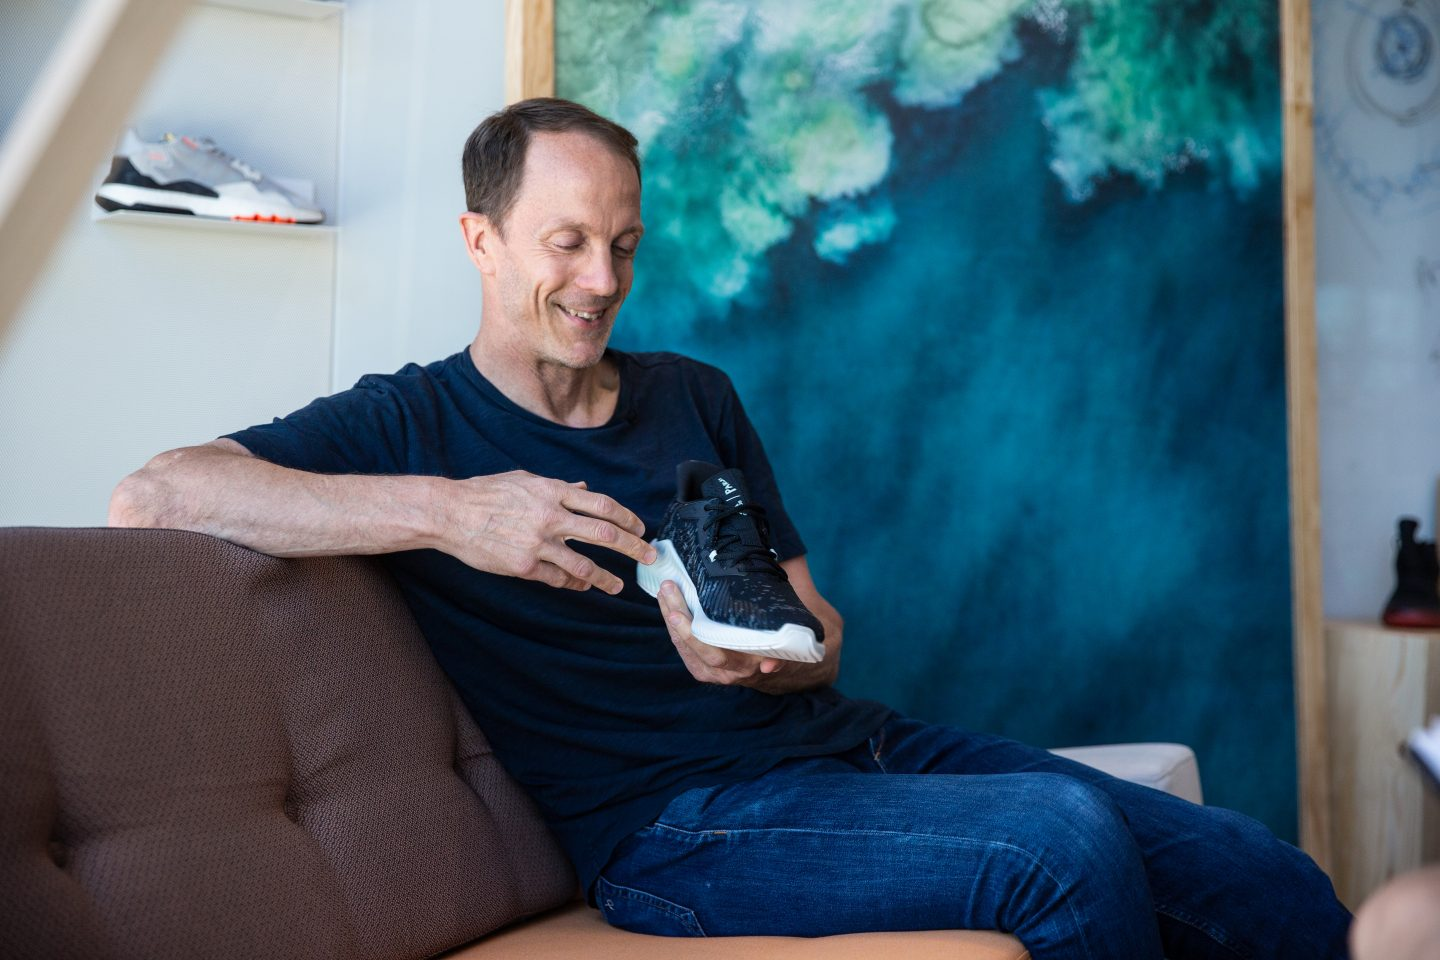 ric Liedtke, Head of Global Brands at adidas, opens up on why he's so passionate about the topic of sustainability.